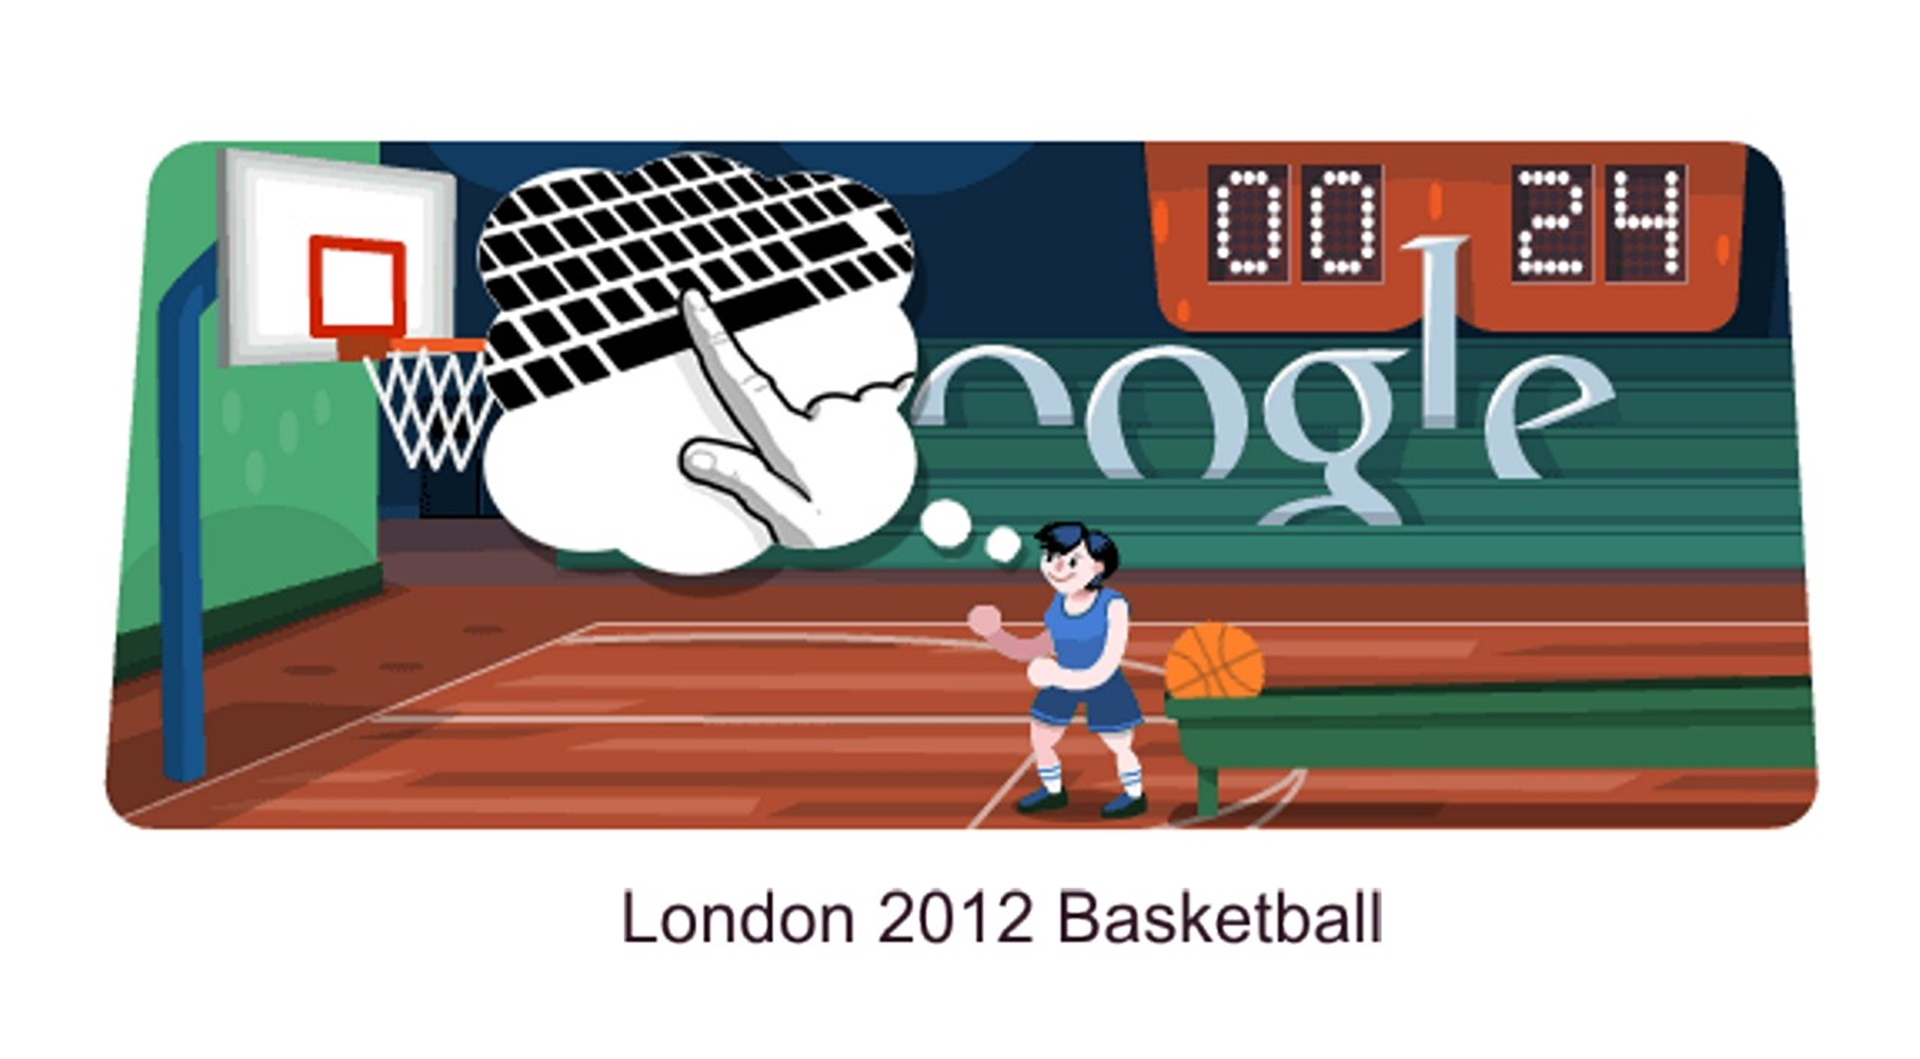 London 2012 Basketball